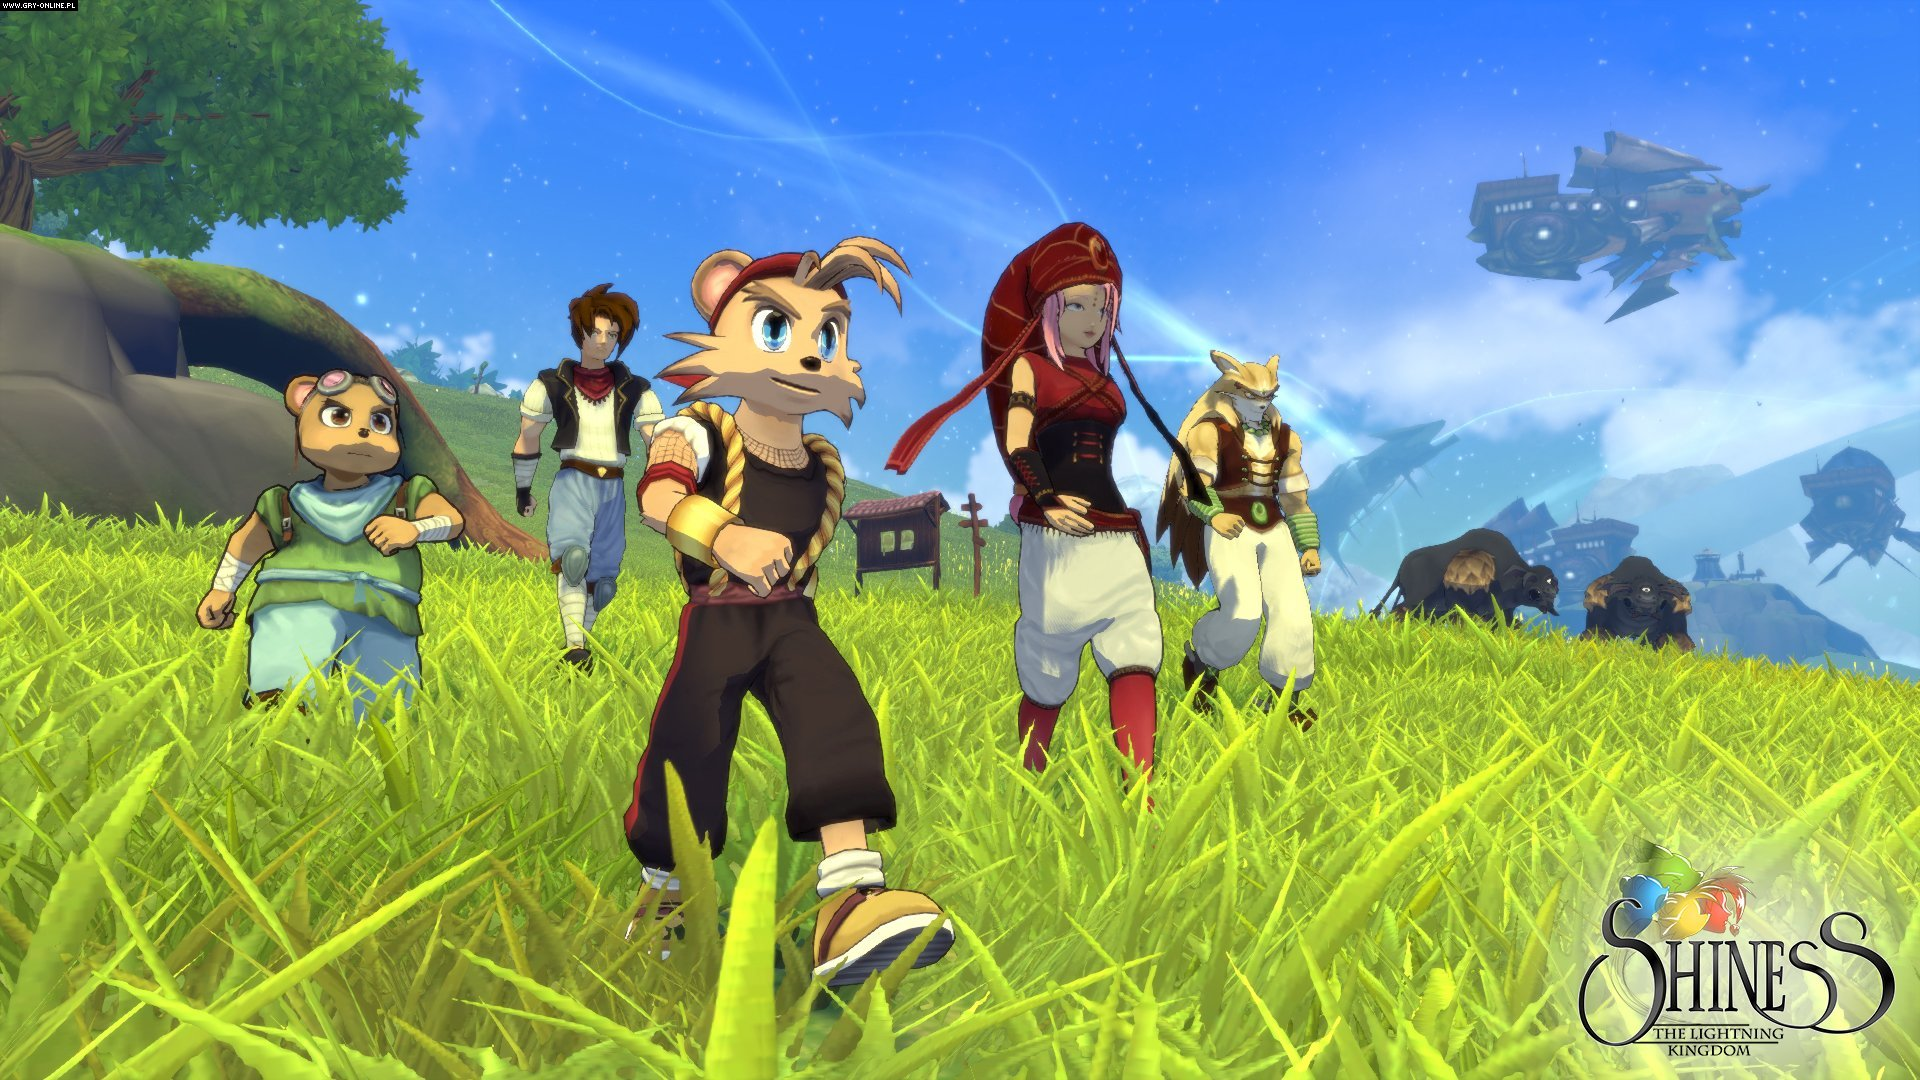 Shiness: The Lightning Kingdom XONE, PS4, PC, WiiU Games Image 9/12, Enigami, Focus Home Interactive